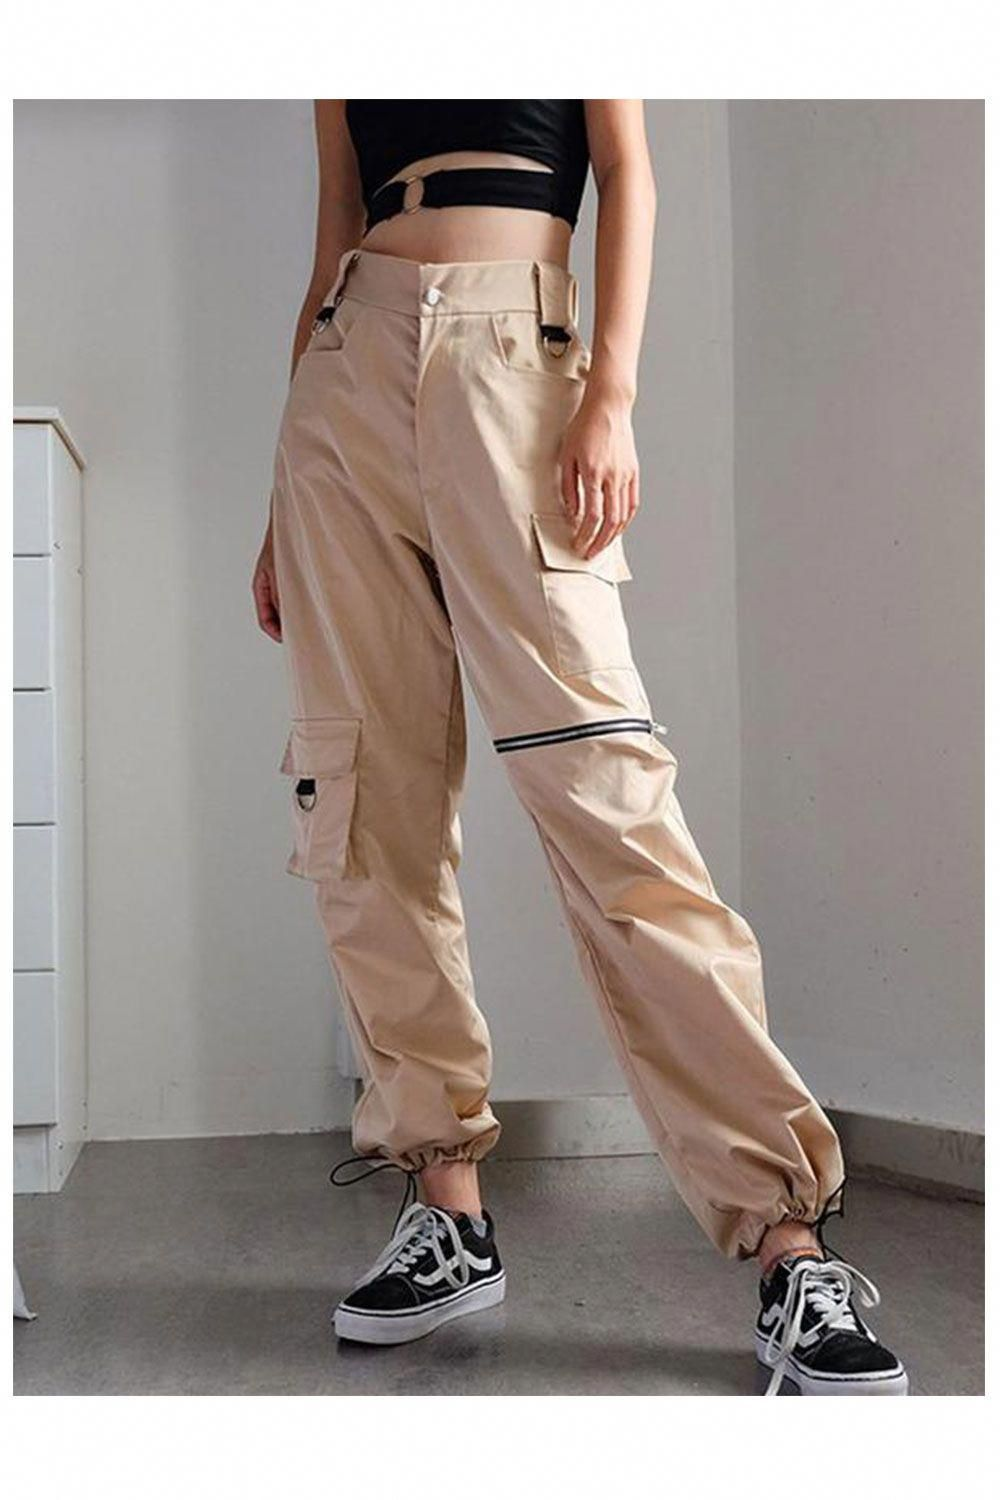 Look At This Trendy Korean Street Fashion Koreanstreetfashion Korean Fashion Trends Fashion Inspo Casual Pants For Women